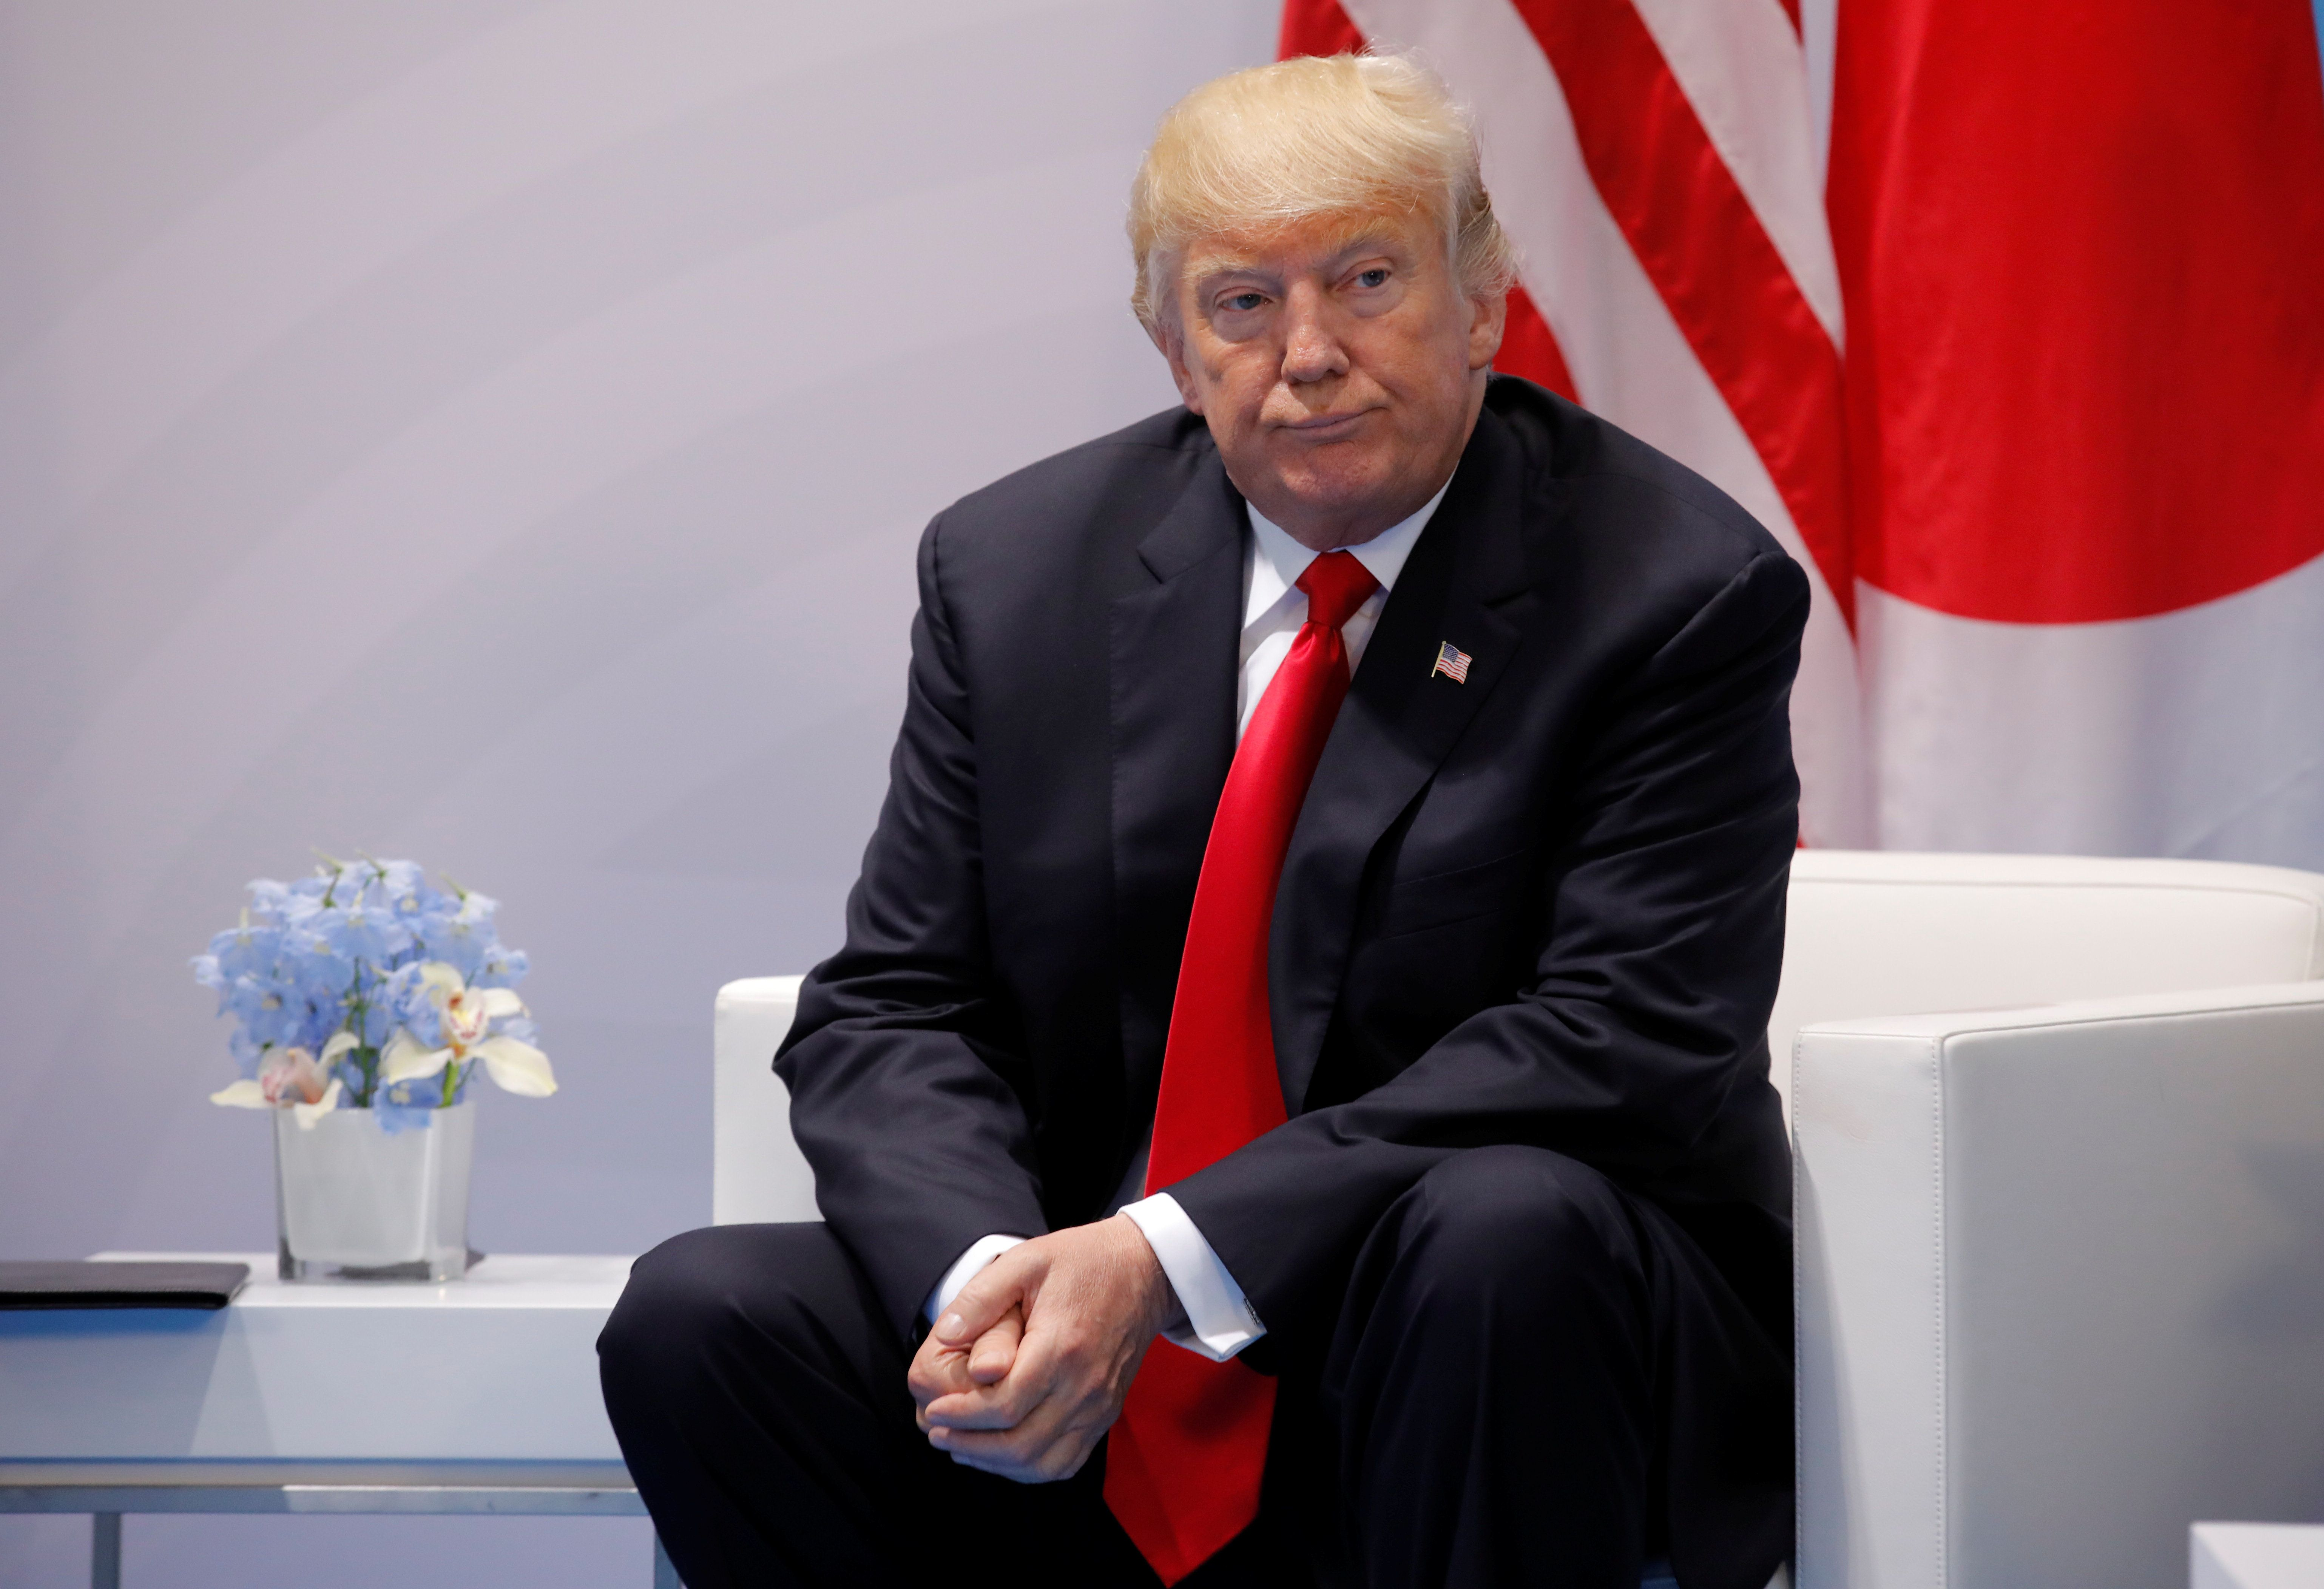 U.S. President Donald Trump is seen during the bilateral meeting with Japanese Prime Minister Shinzo Abe at the G20 leaders summit in Hamburg, Germany July 8, 2017. REUTERS/Carlos Barria